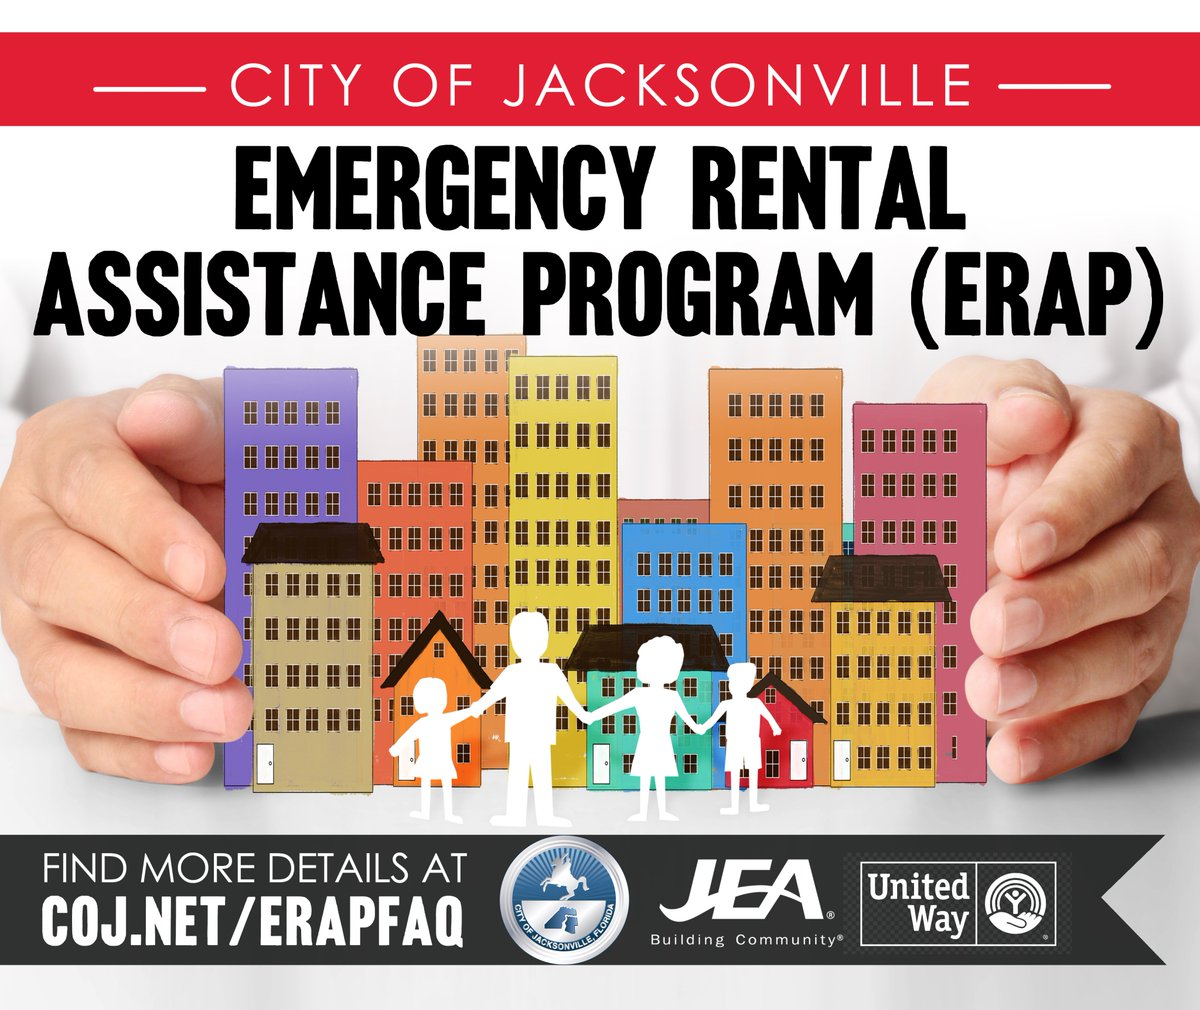 City Of Jacksonville Coj On Twitter Reminder Applications For The City Of Jacksonville Emergency Rental Assistance Program Are Due By Tomorrow Friday 4 9 At 6pm Go To Https T Co Lvfgz2lxll To Apply Online